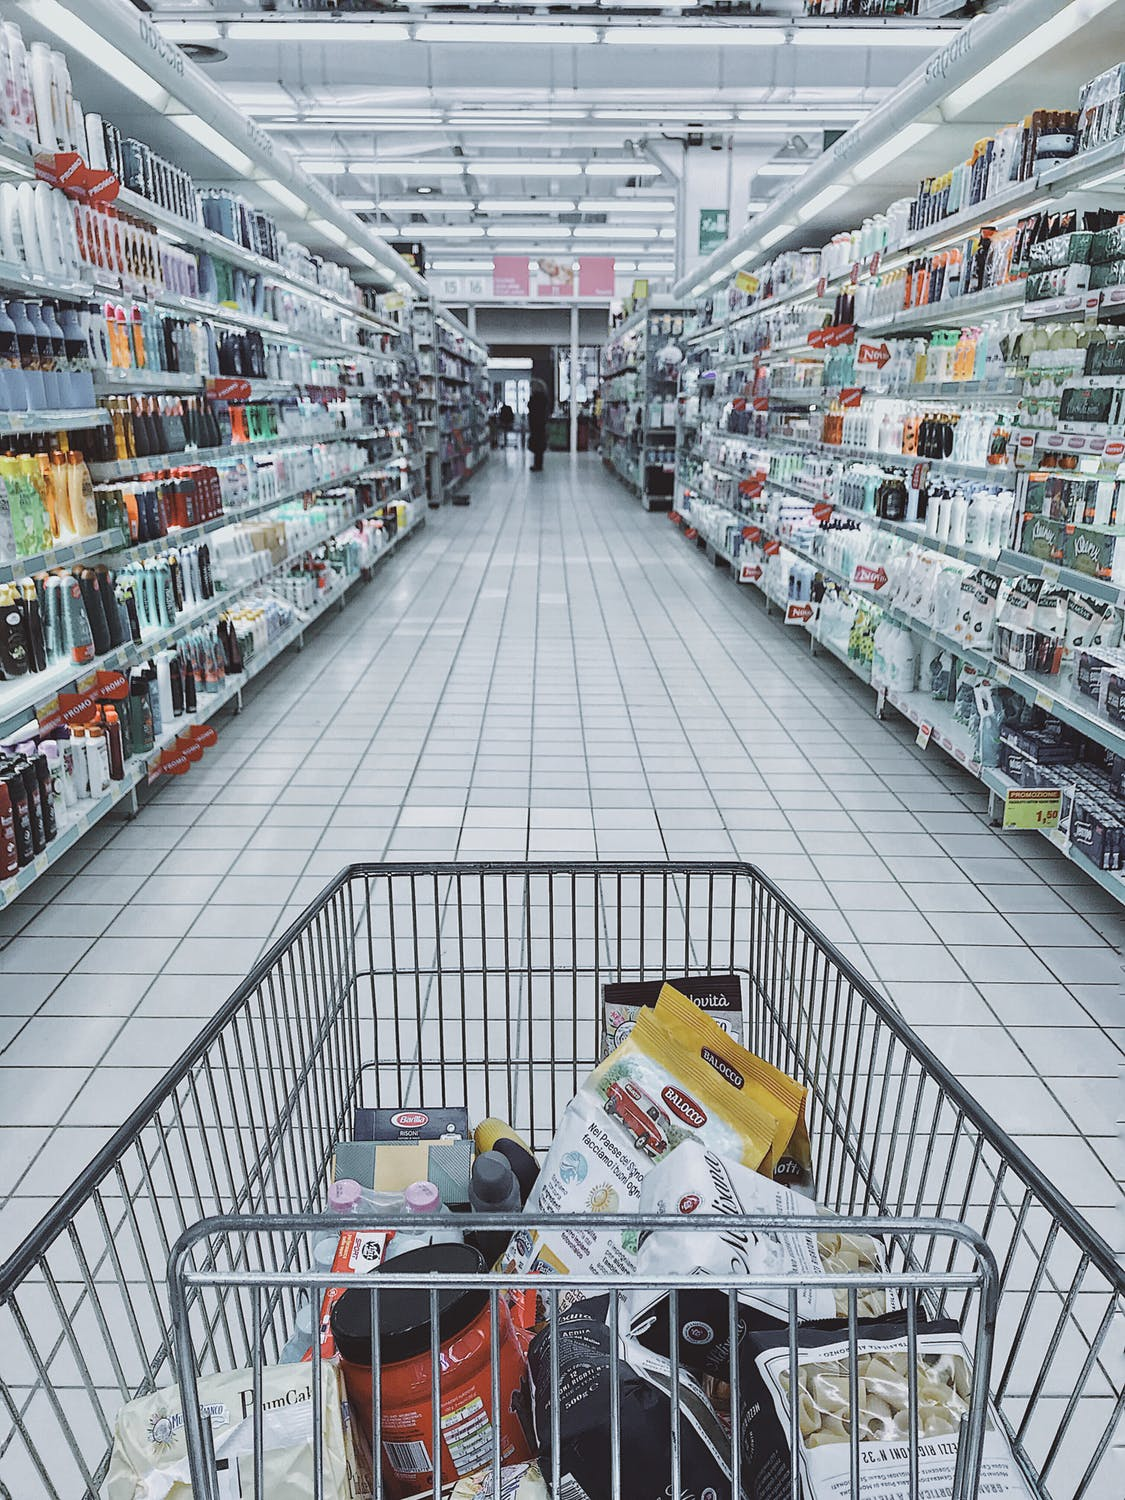 perspective of a person with a shopping cart, looking at an array of items in the shelves of a shop